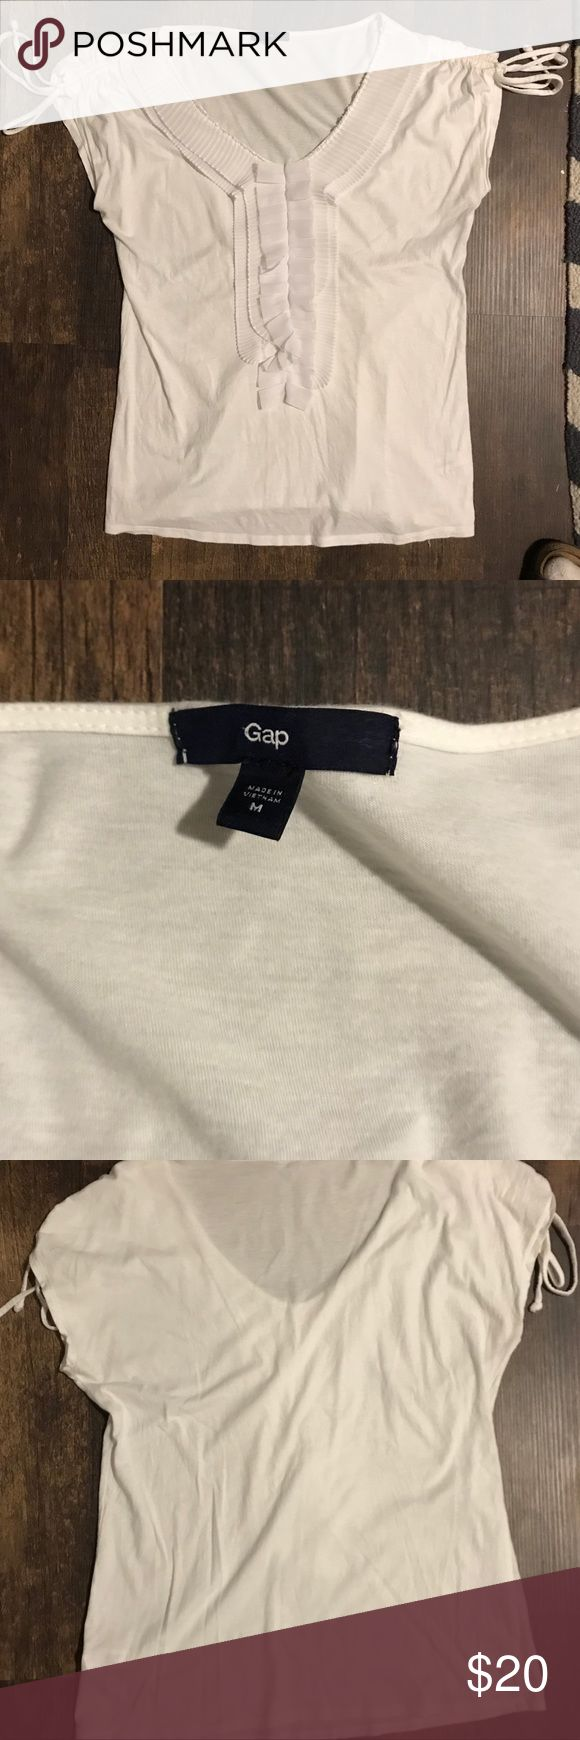 Gap Top Women's Medium Gap Top Women's Medium Tie Sleeve. Woven Trim. Chest Side Seam to Side Seam 19 inches. Length 26 inches. Like New. Gap Tops Blouses